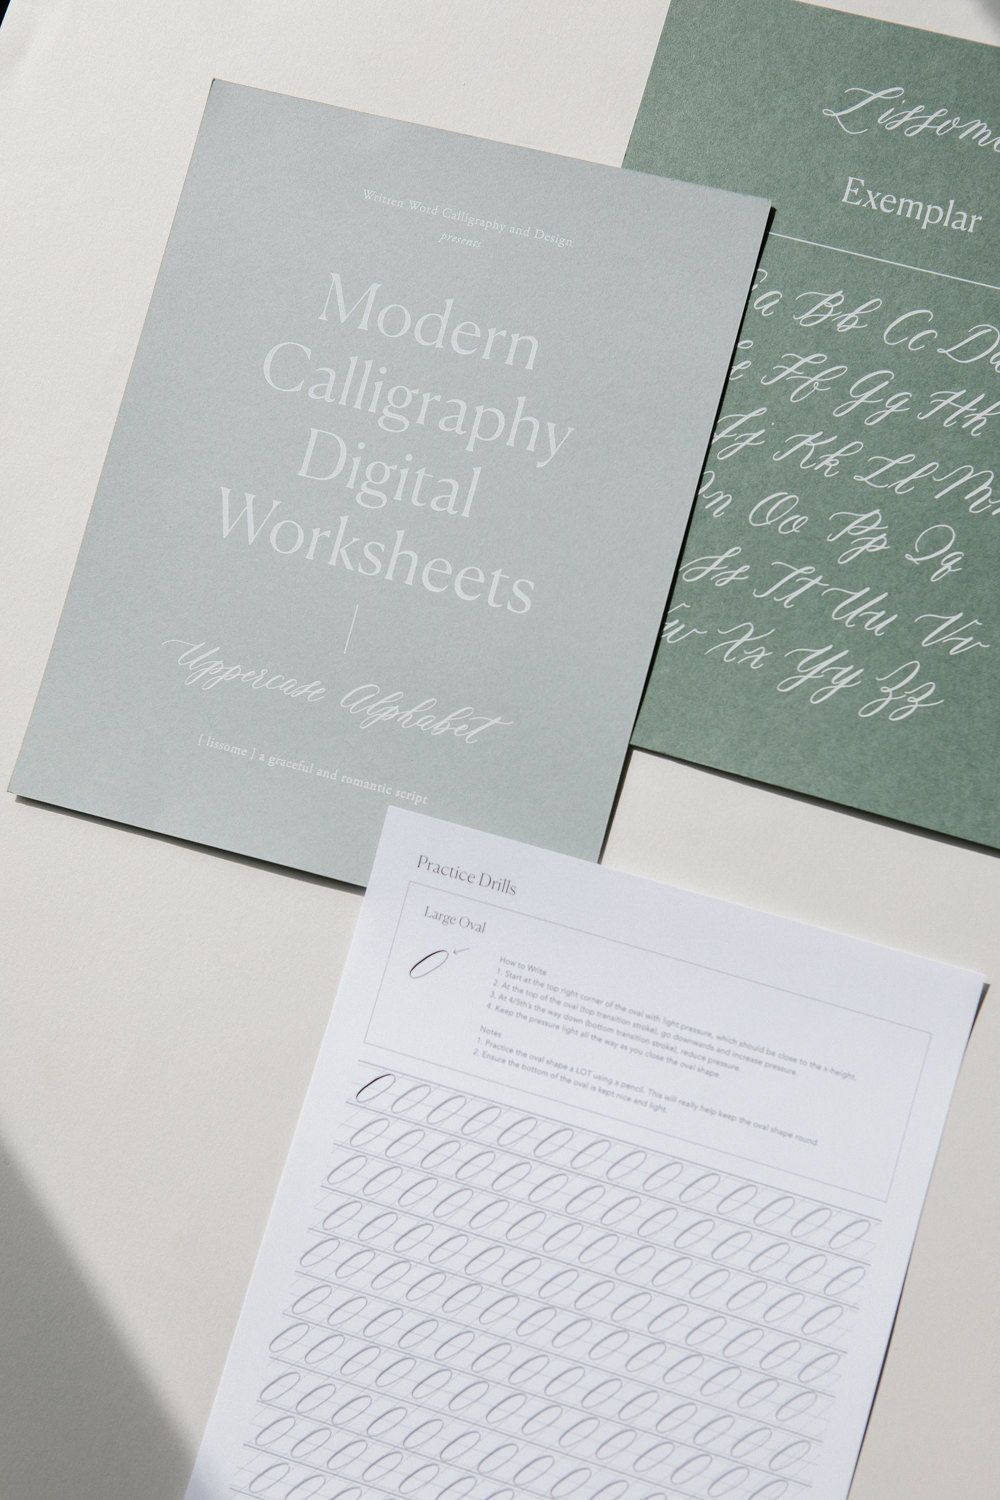 Uppercase Digital Worksheets Lissome Written Word Calligraphy And Design Calligraphy Supplies Calligraphy Styles Addressing Envelopes